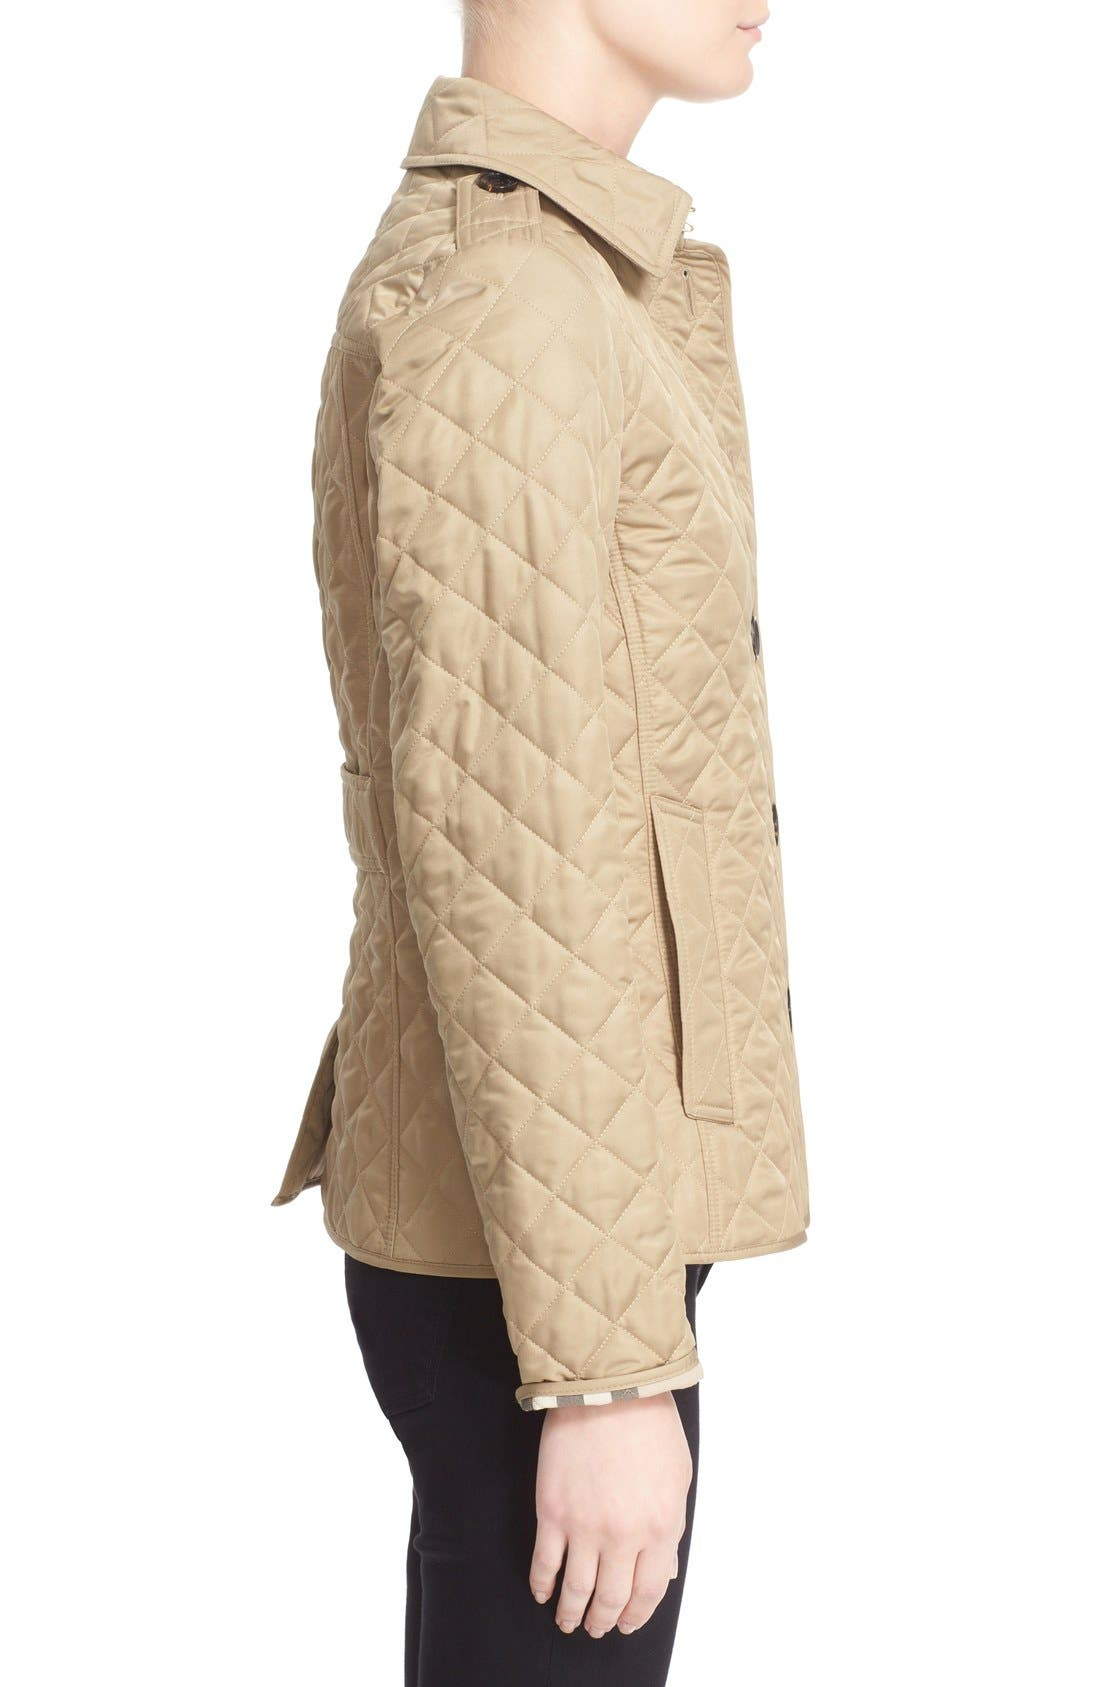 Ashurst Quilted Jacket,                             Alternate thumbnail 5, color,                             270